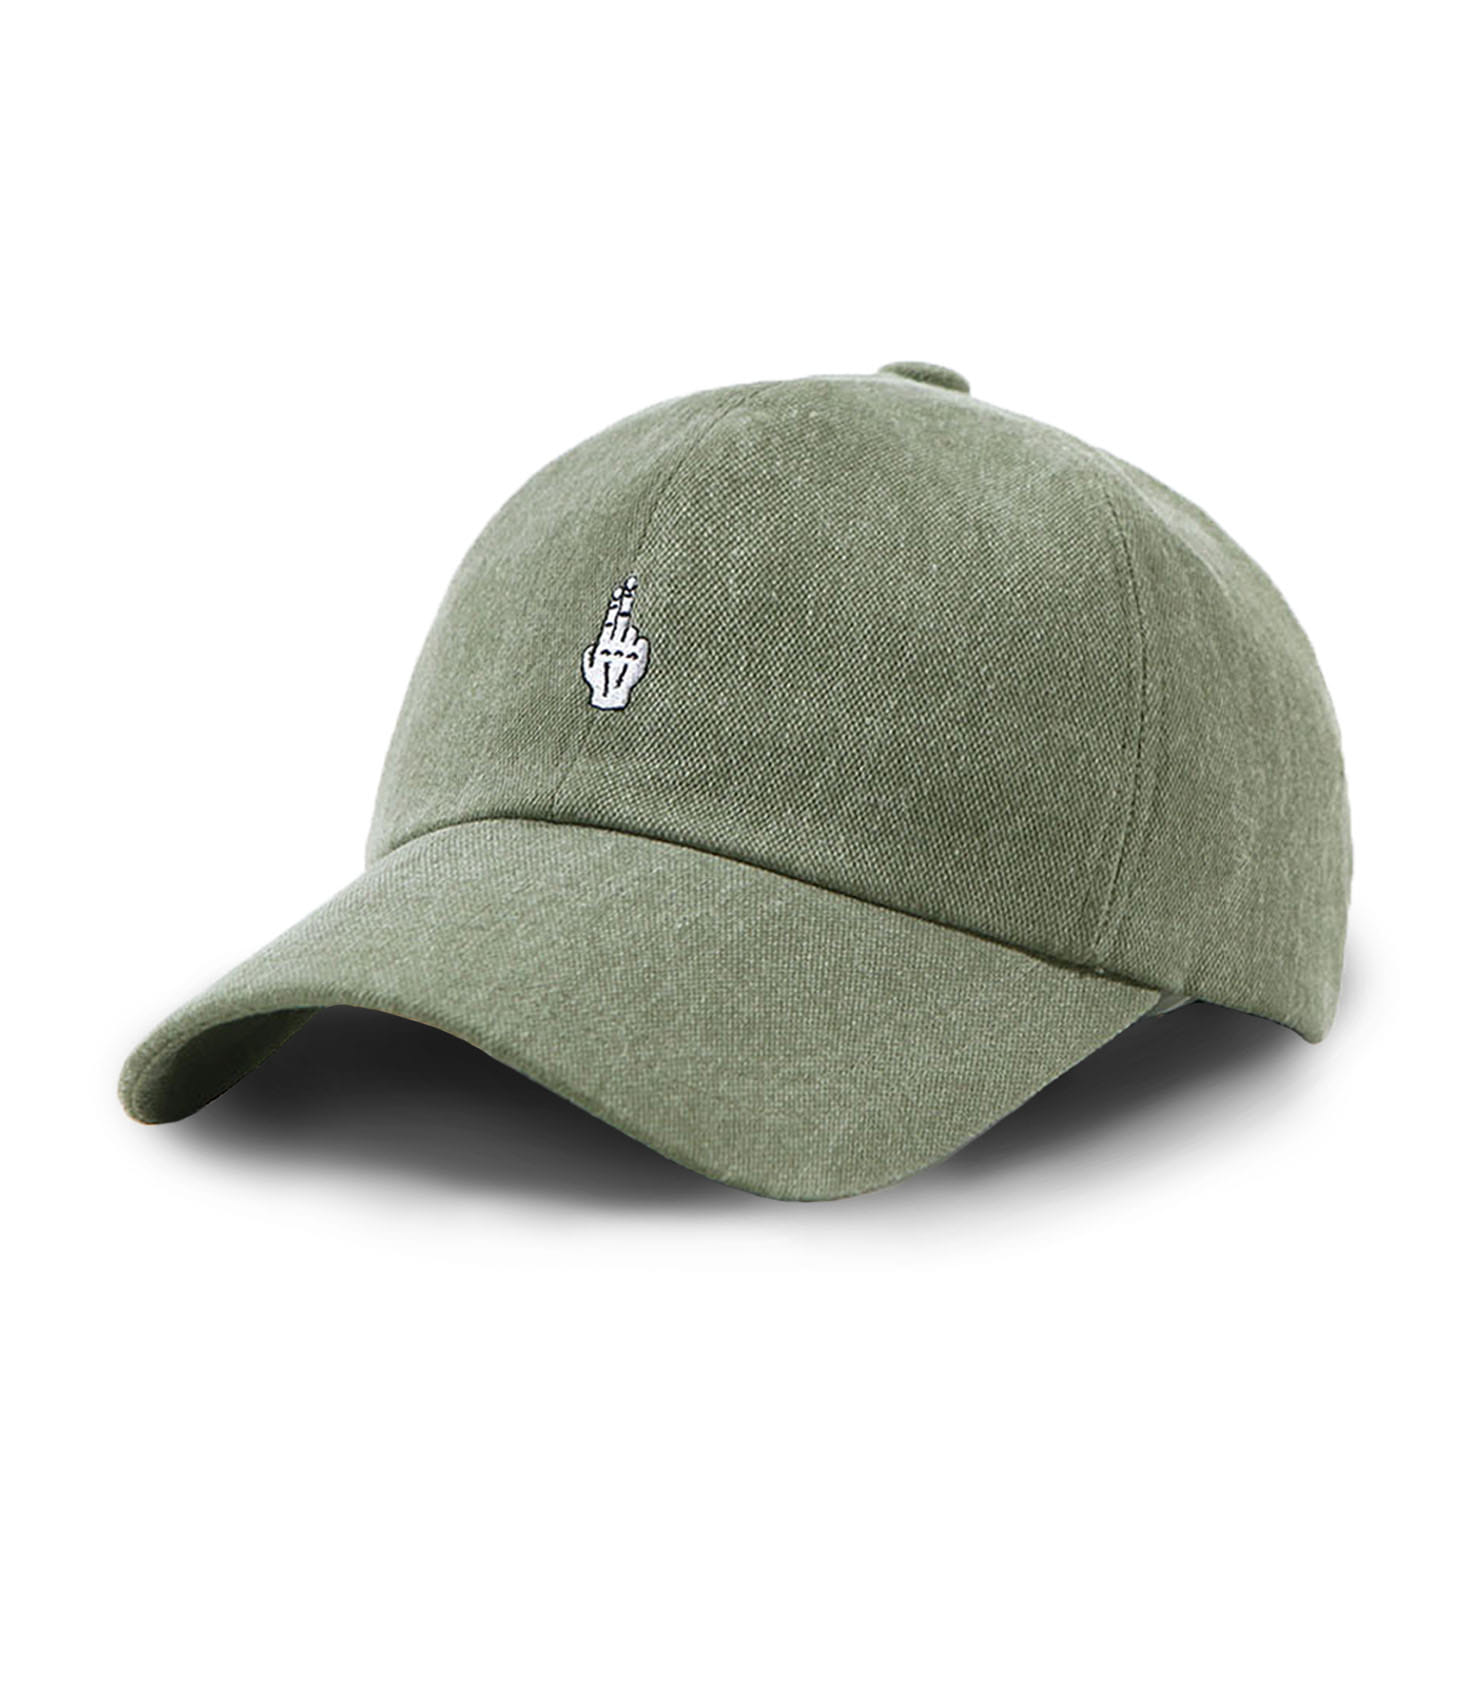 VIBRATE - FINGER BALL CAP (WASHING KHAKI)